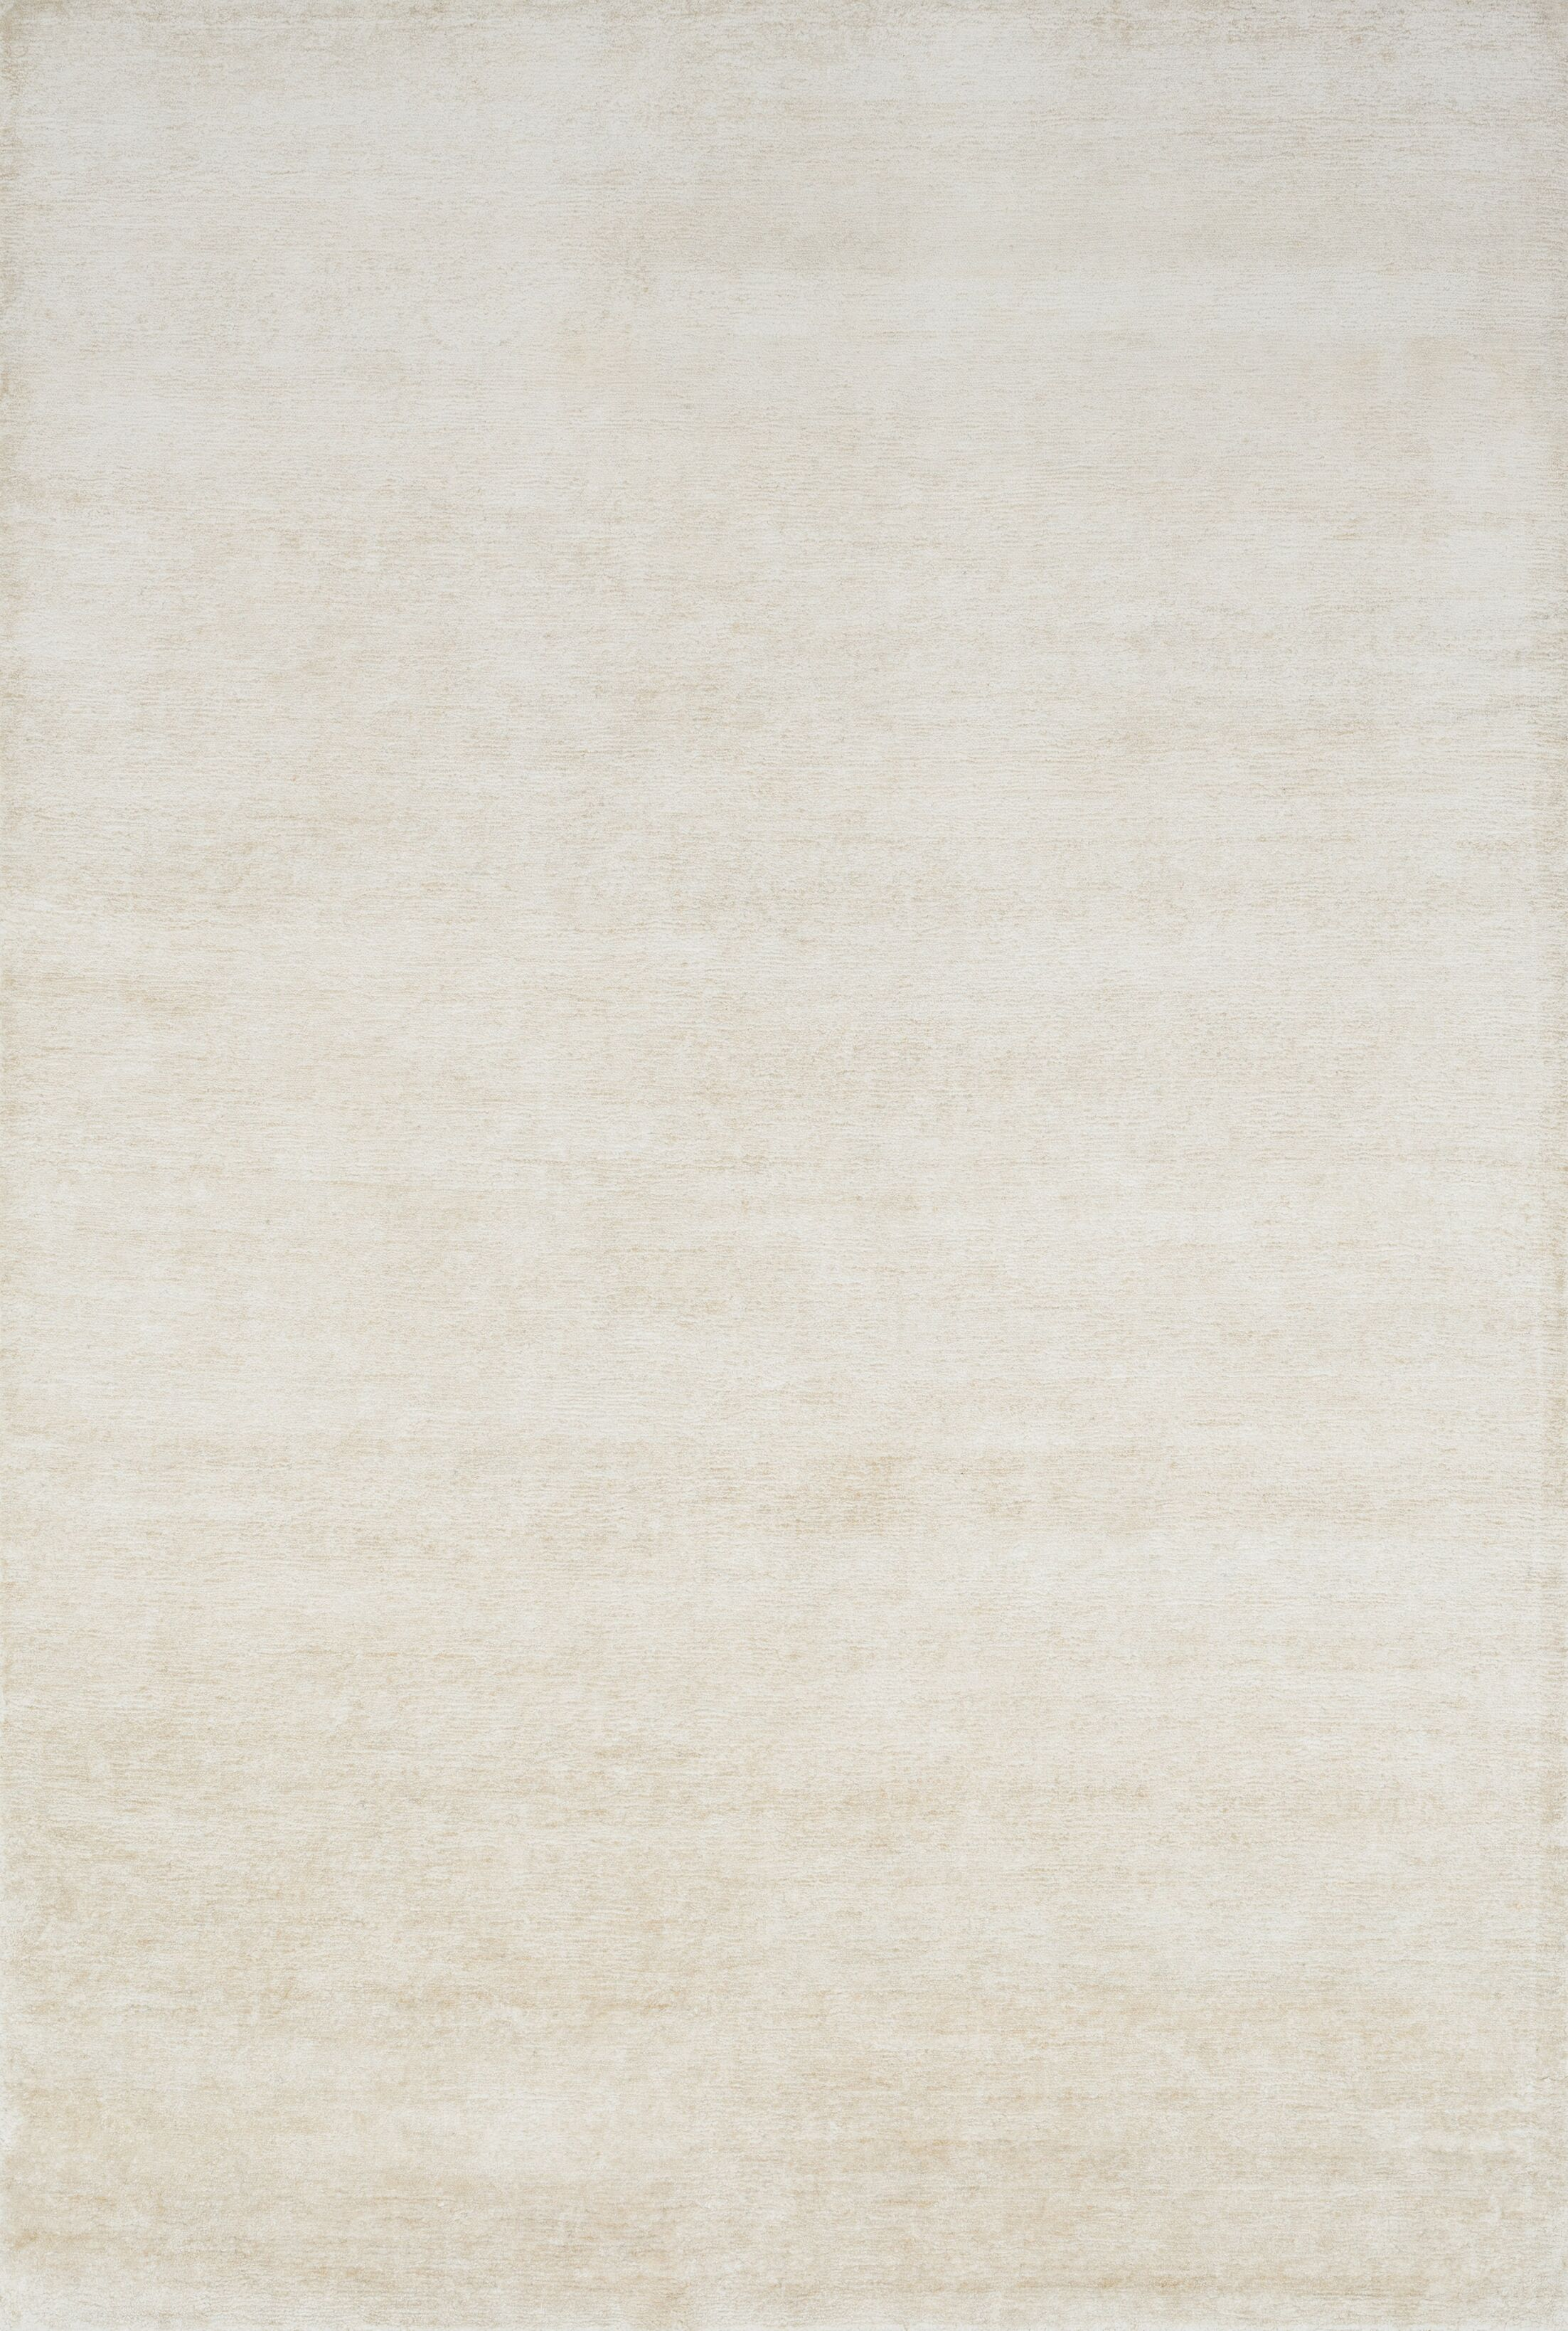 Hively Hand-Knotted Ivory Area Rug Rug Size: Rectangle 8'6